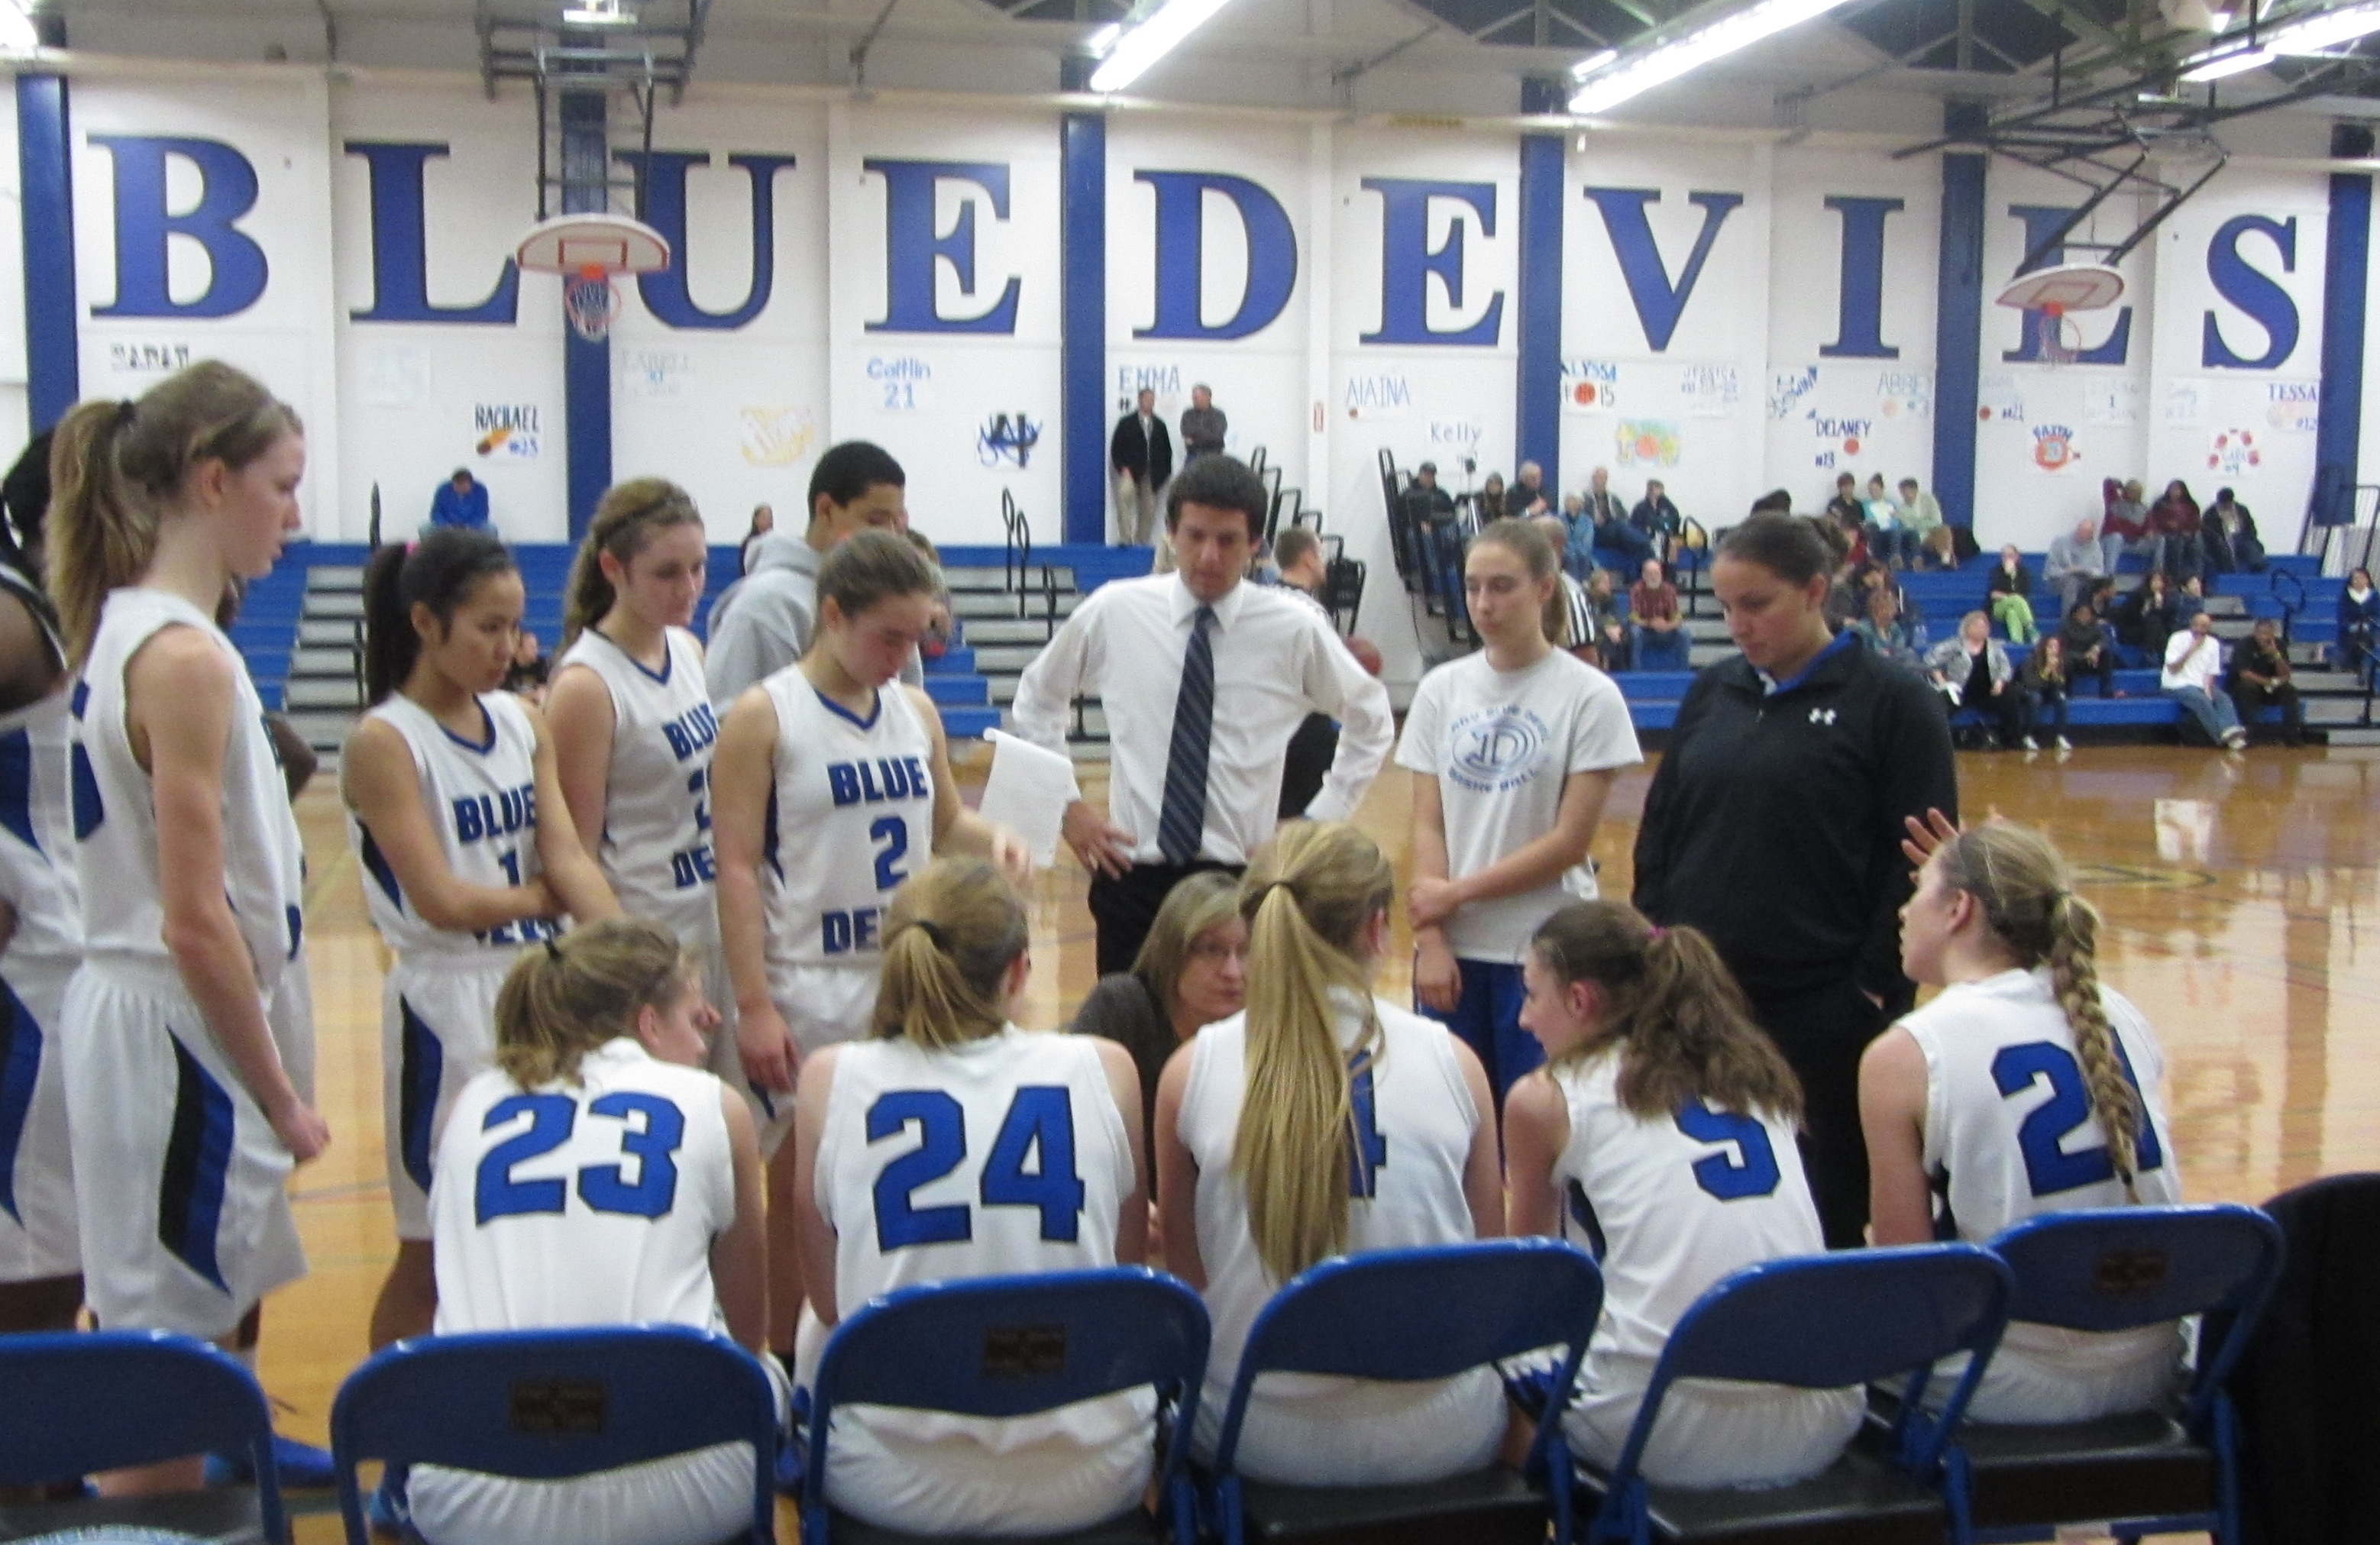 The DHS women's varsity basketball team huddles during a break in its Jan. 9 game. Davis lost 55-66 to El Camino.